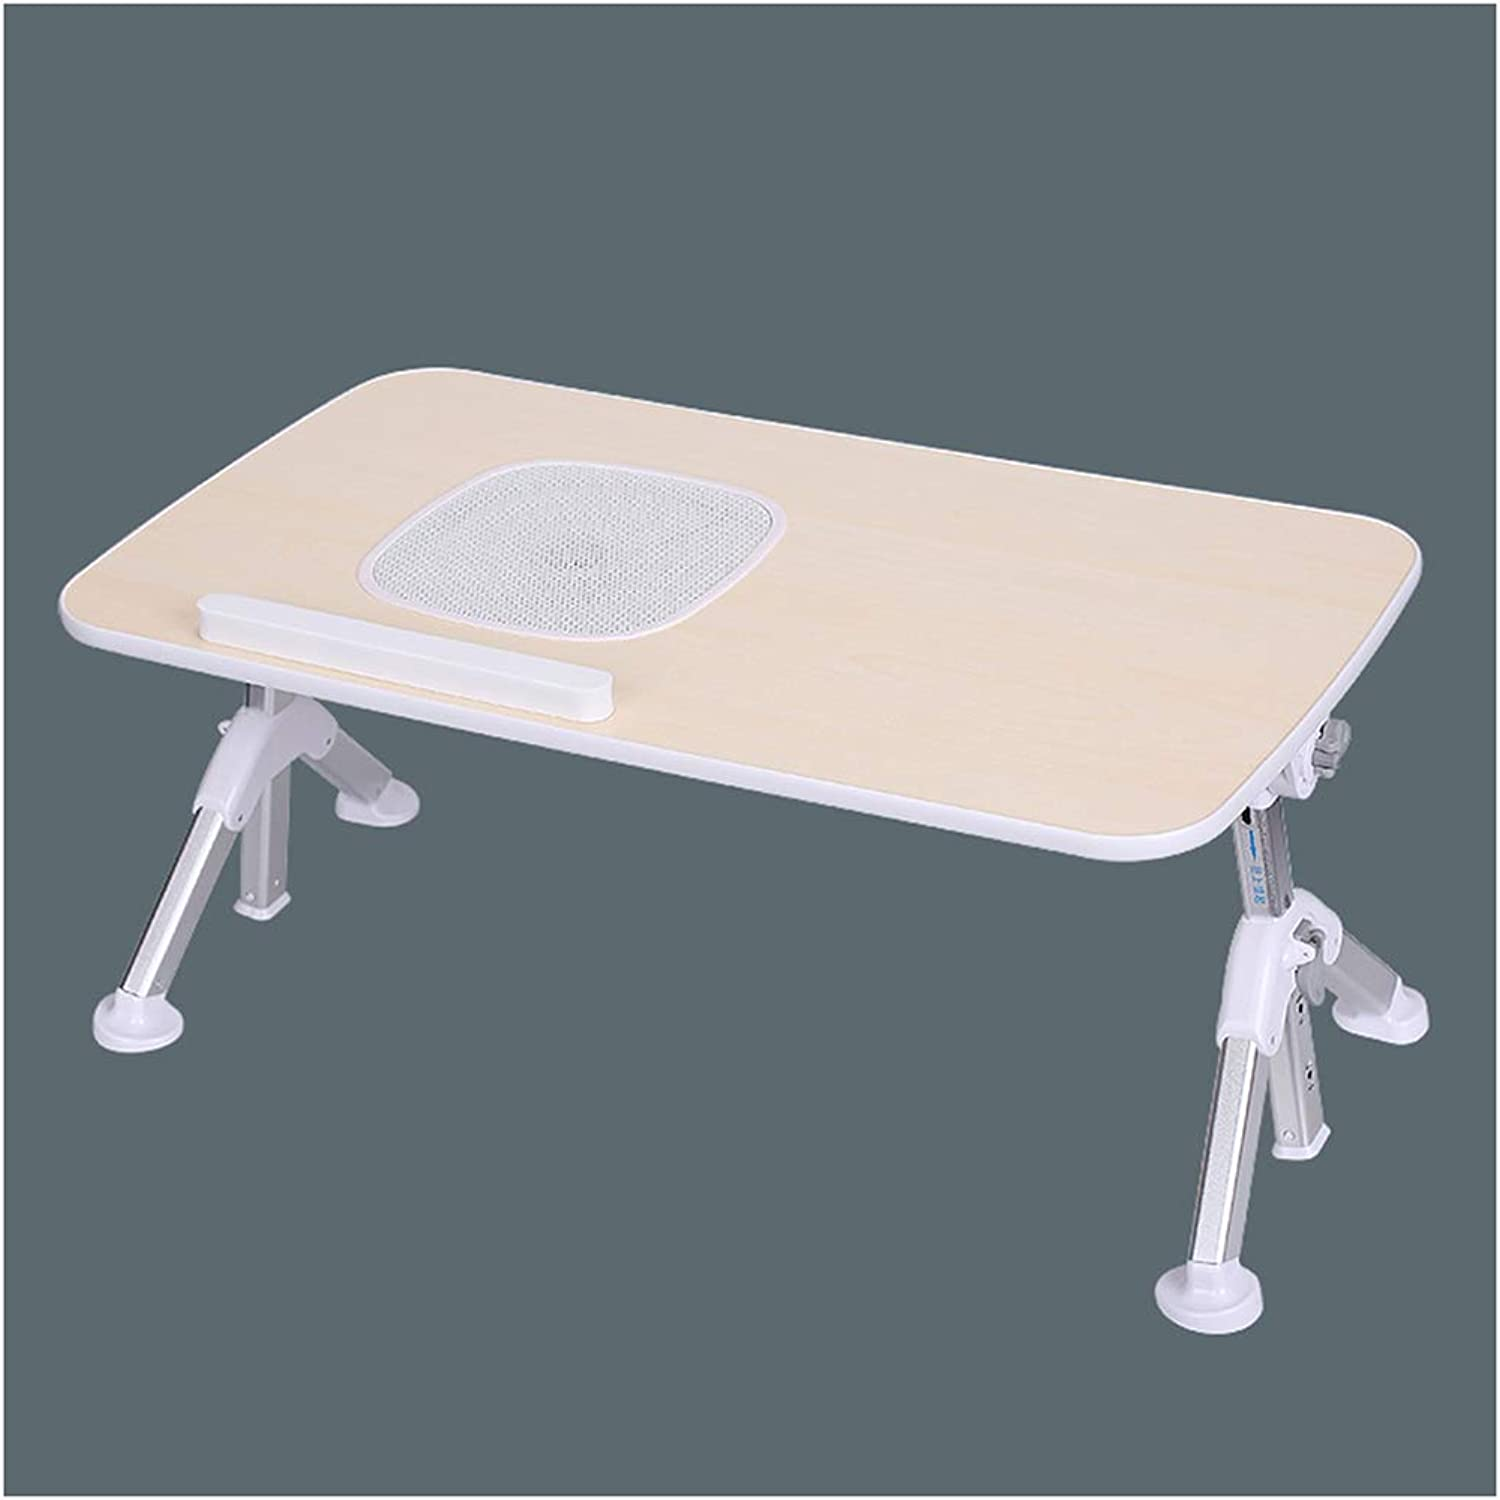 Folding Table Foldable Laptop Desk Adjustable Computer Desk Bed Table College Dormitory Folding Table Lazy Small Table (Size   52x30x25-33cm)